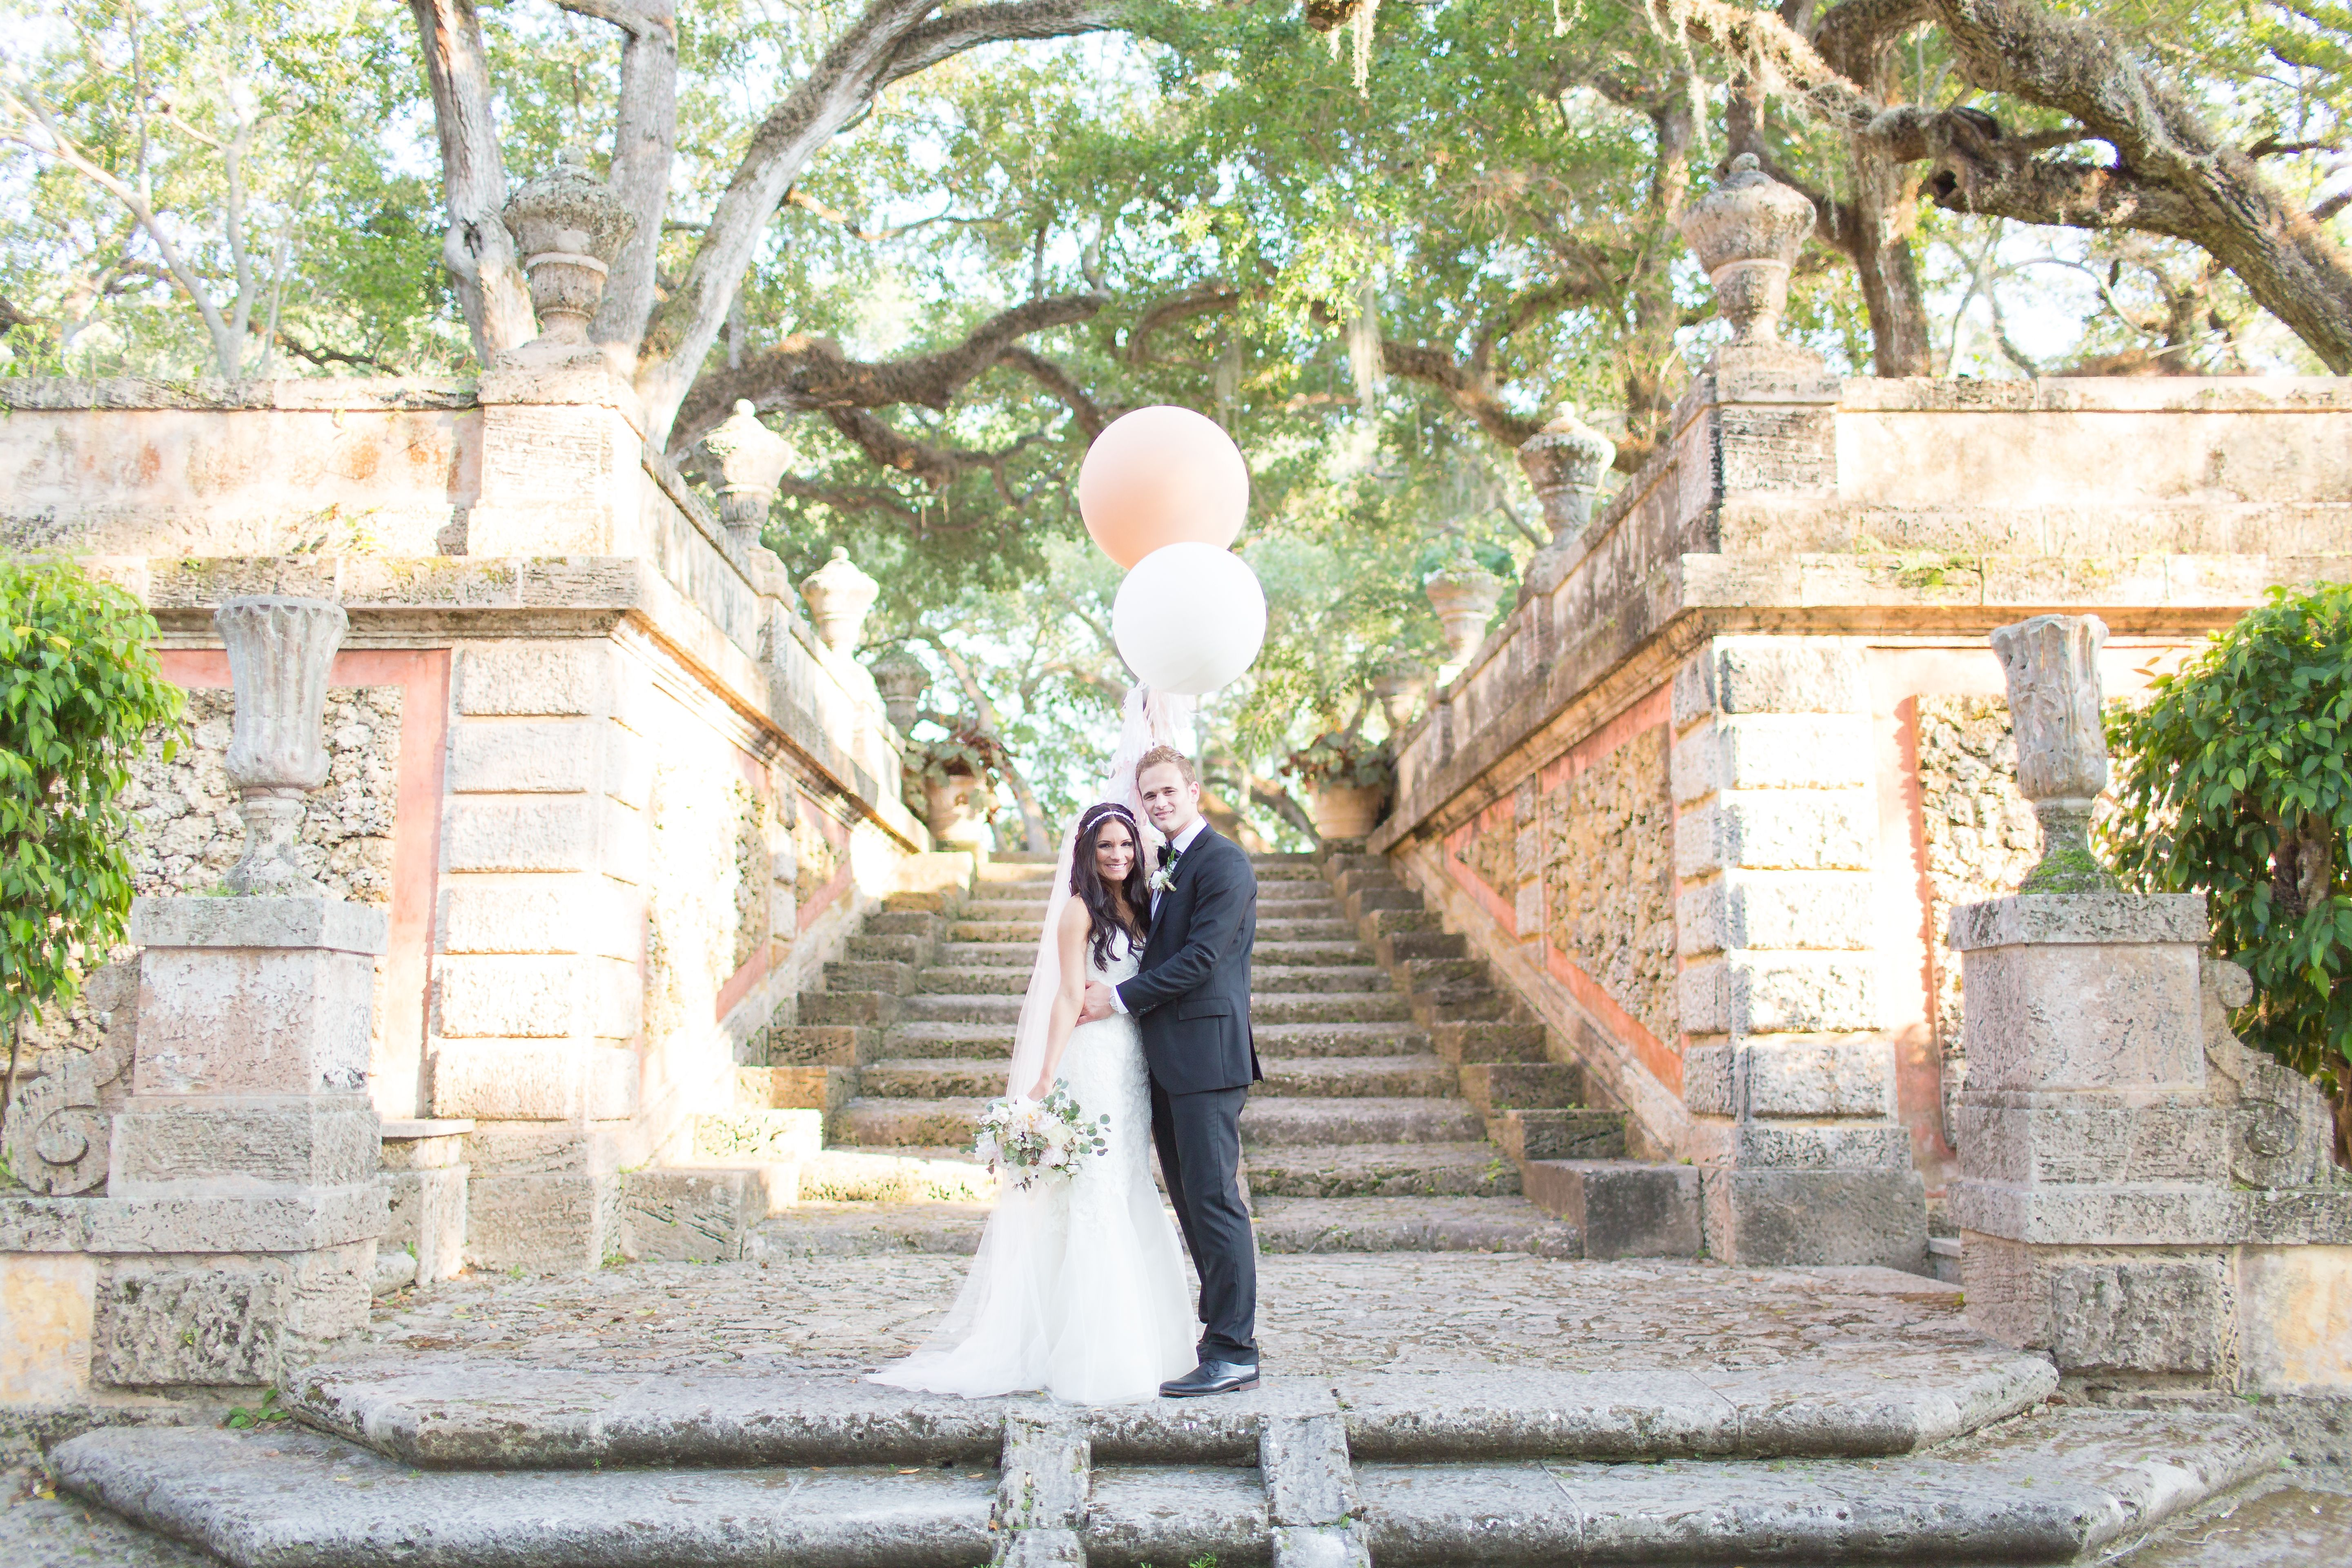 Featured On The Knot A Romantic Garden Wedding At Vizcaya Museum And Gardens In Miami Florida Romantic Garden Wedding Romantic Garden Real Weddings Photos